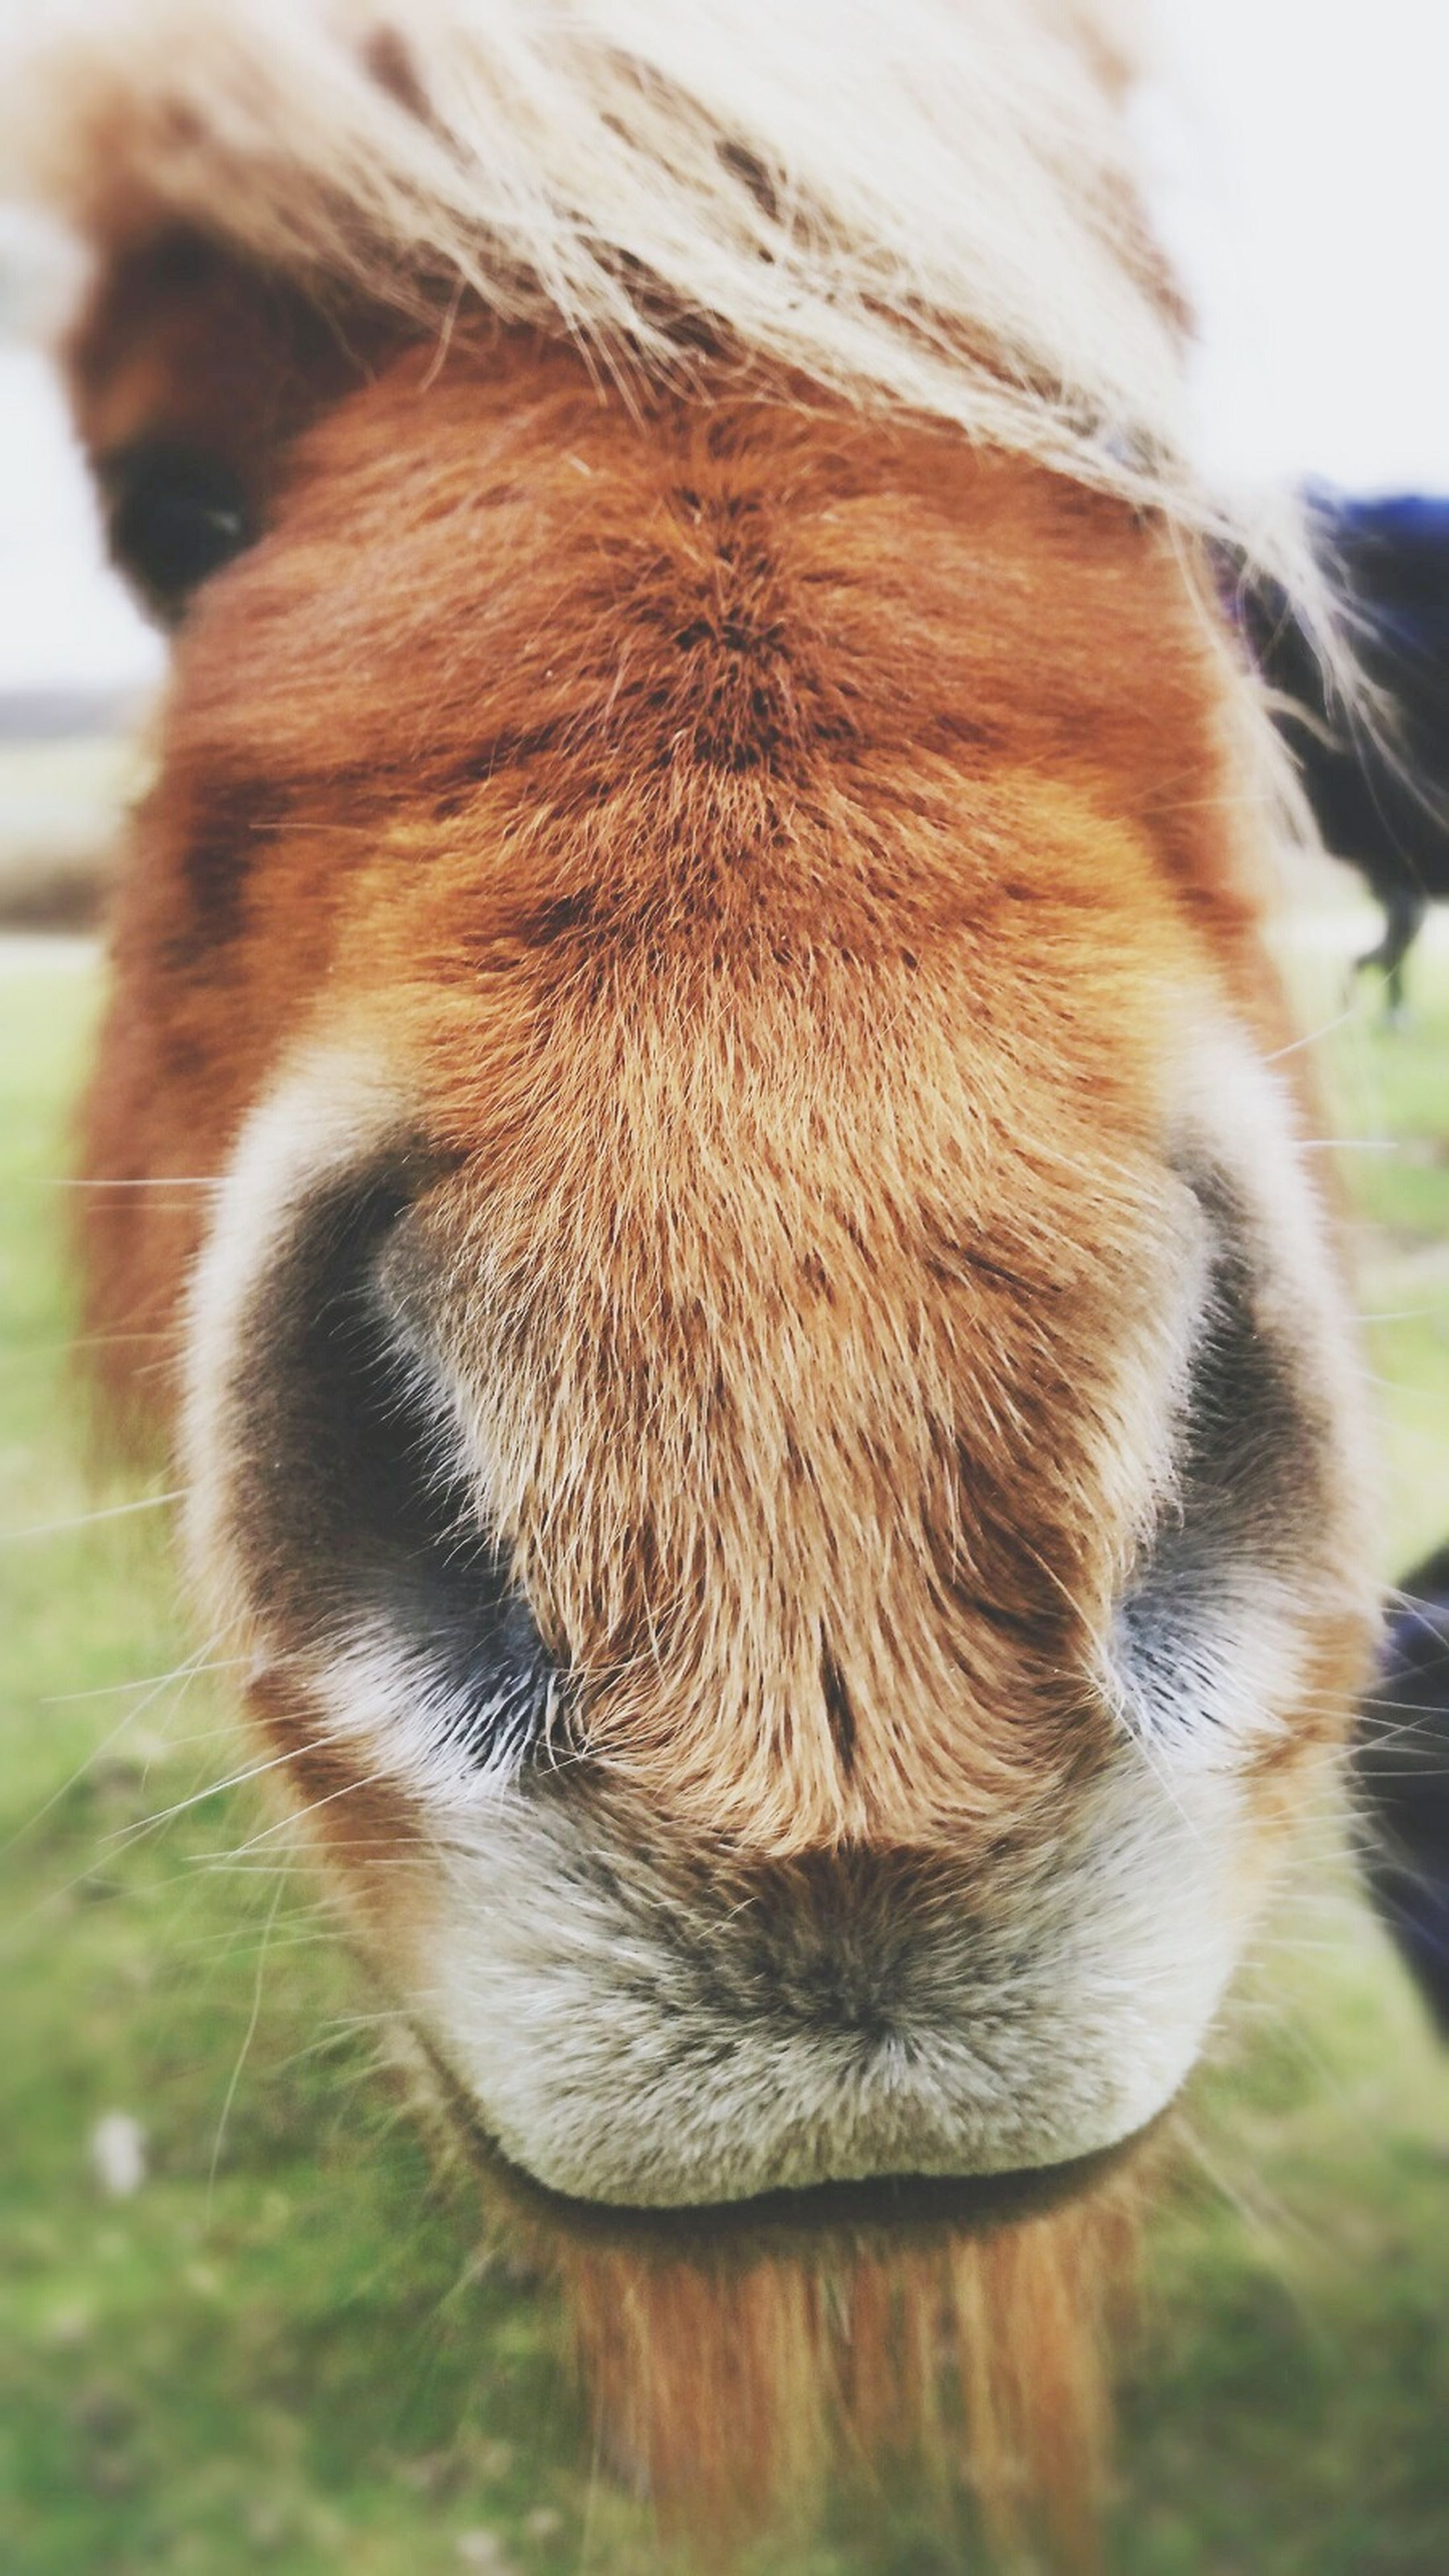 animal themes, mammal, one animal, domestic animals, animal head, close-up, animal body part, focus on foreground, pets, animal hair, horse, brown, part of, livestock, zoology, day, animal nose, outdoors, no people, field